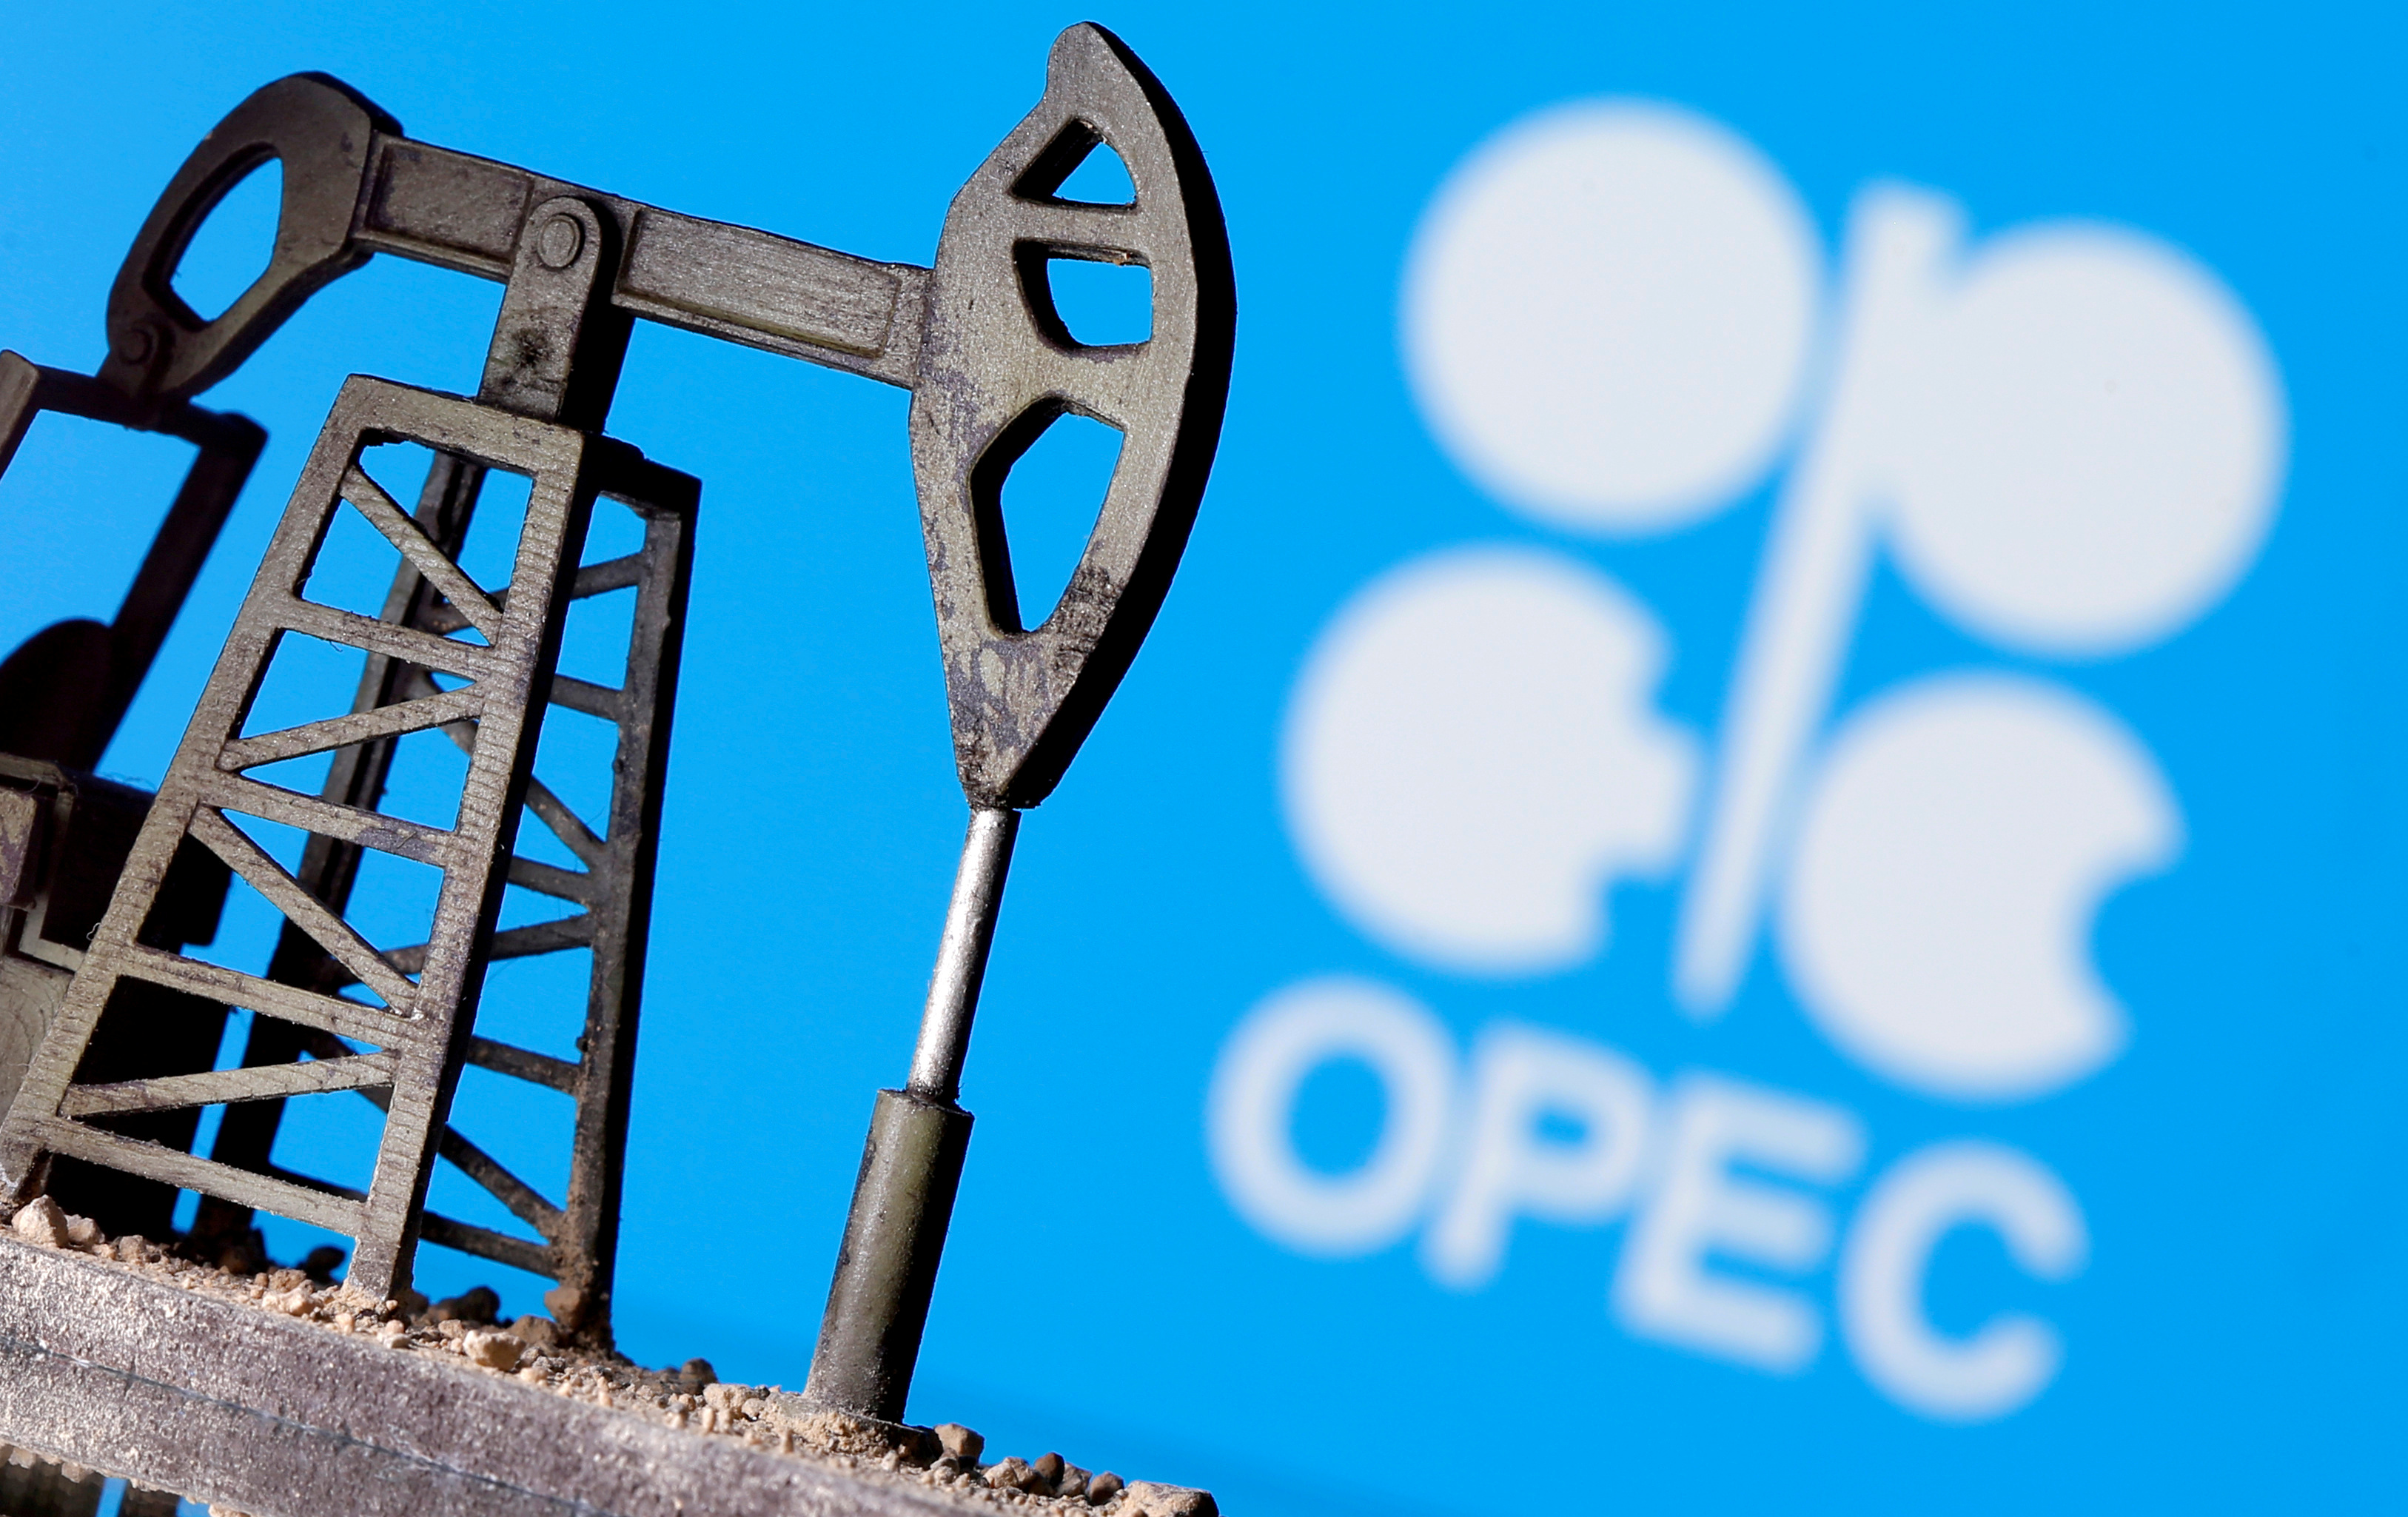 A 3D-printed oil pump jack is seen in front of displayed OPEC logo in this illustration picture, April 14, 2020. REUTERS/Dado Ruvic/Illustration/File Photo